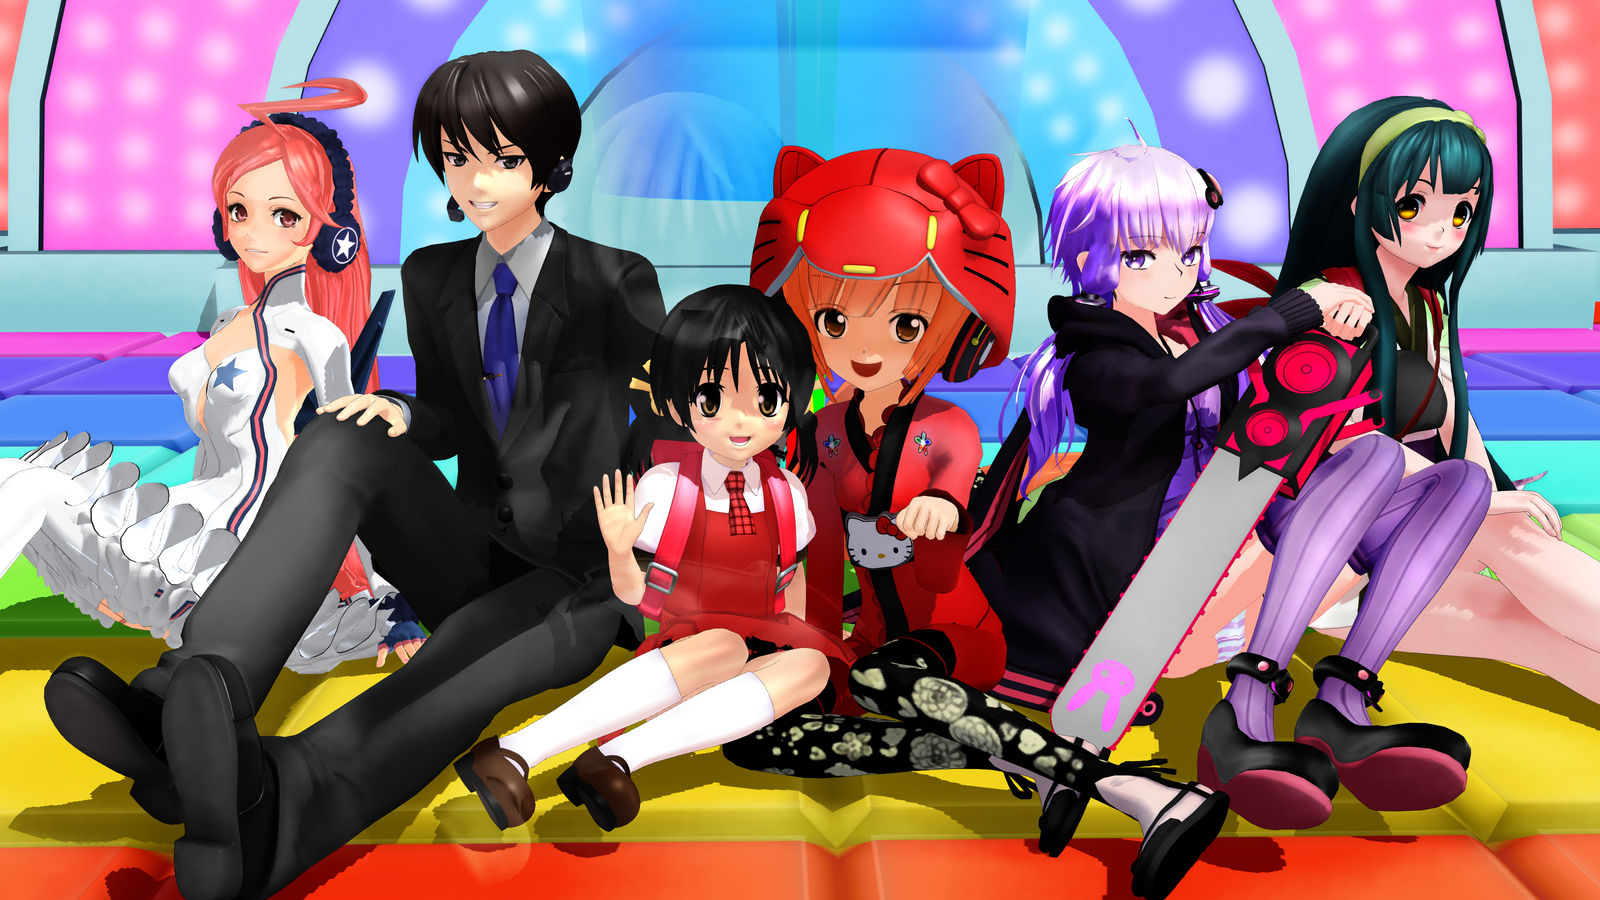 MMD] AH-Software VOCALOID Family by iMACobra on DeviantArt